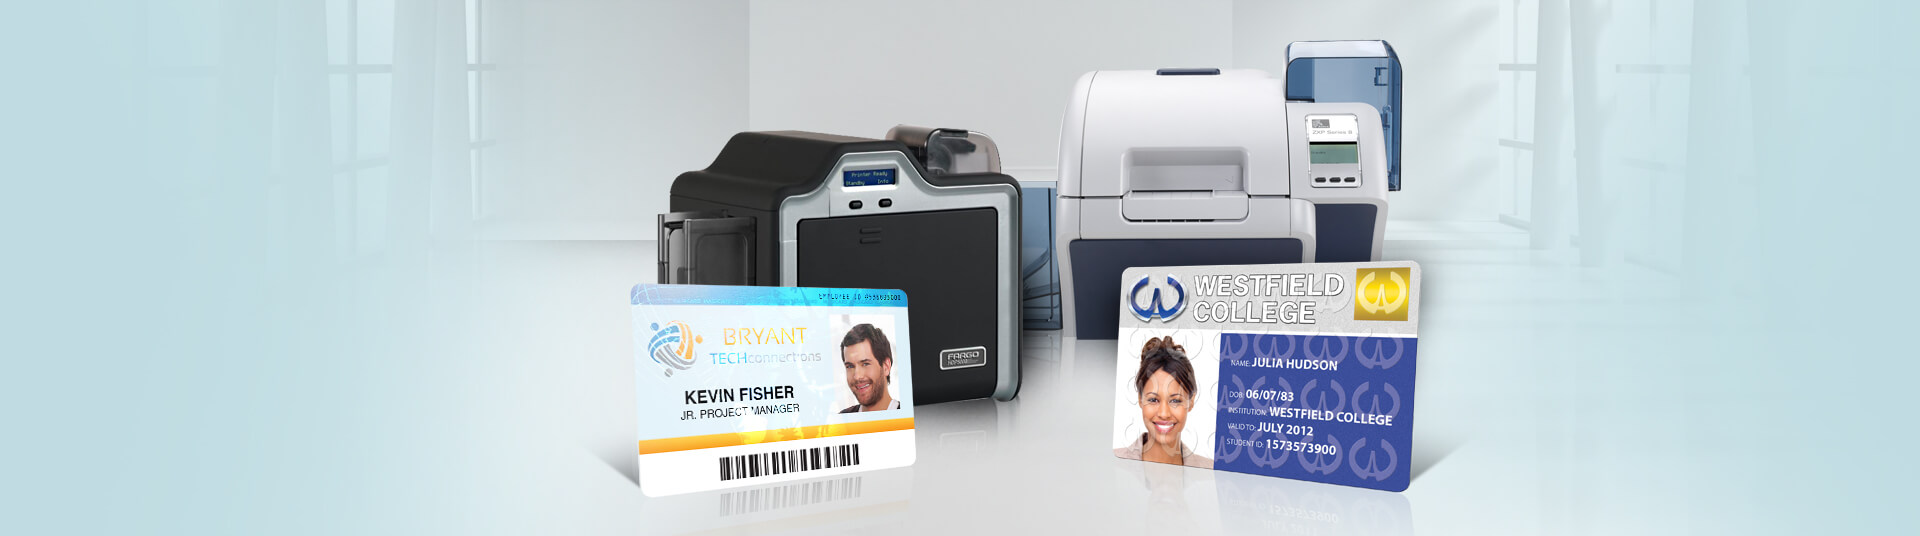 Resin Thermal Transfer Printers